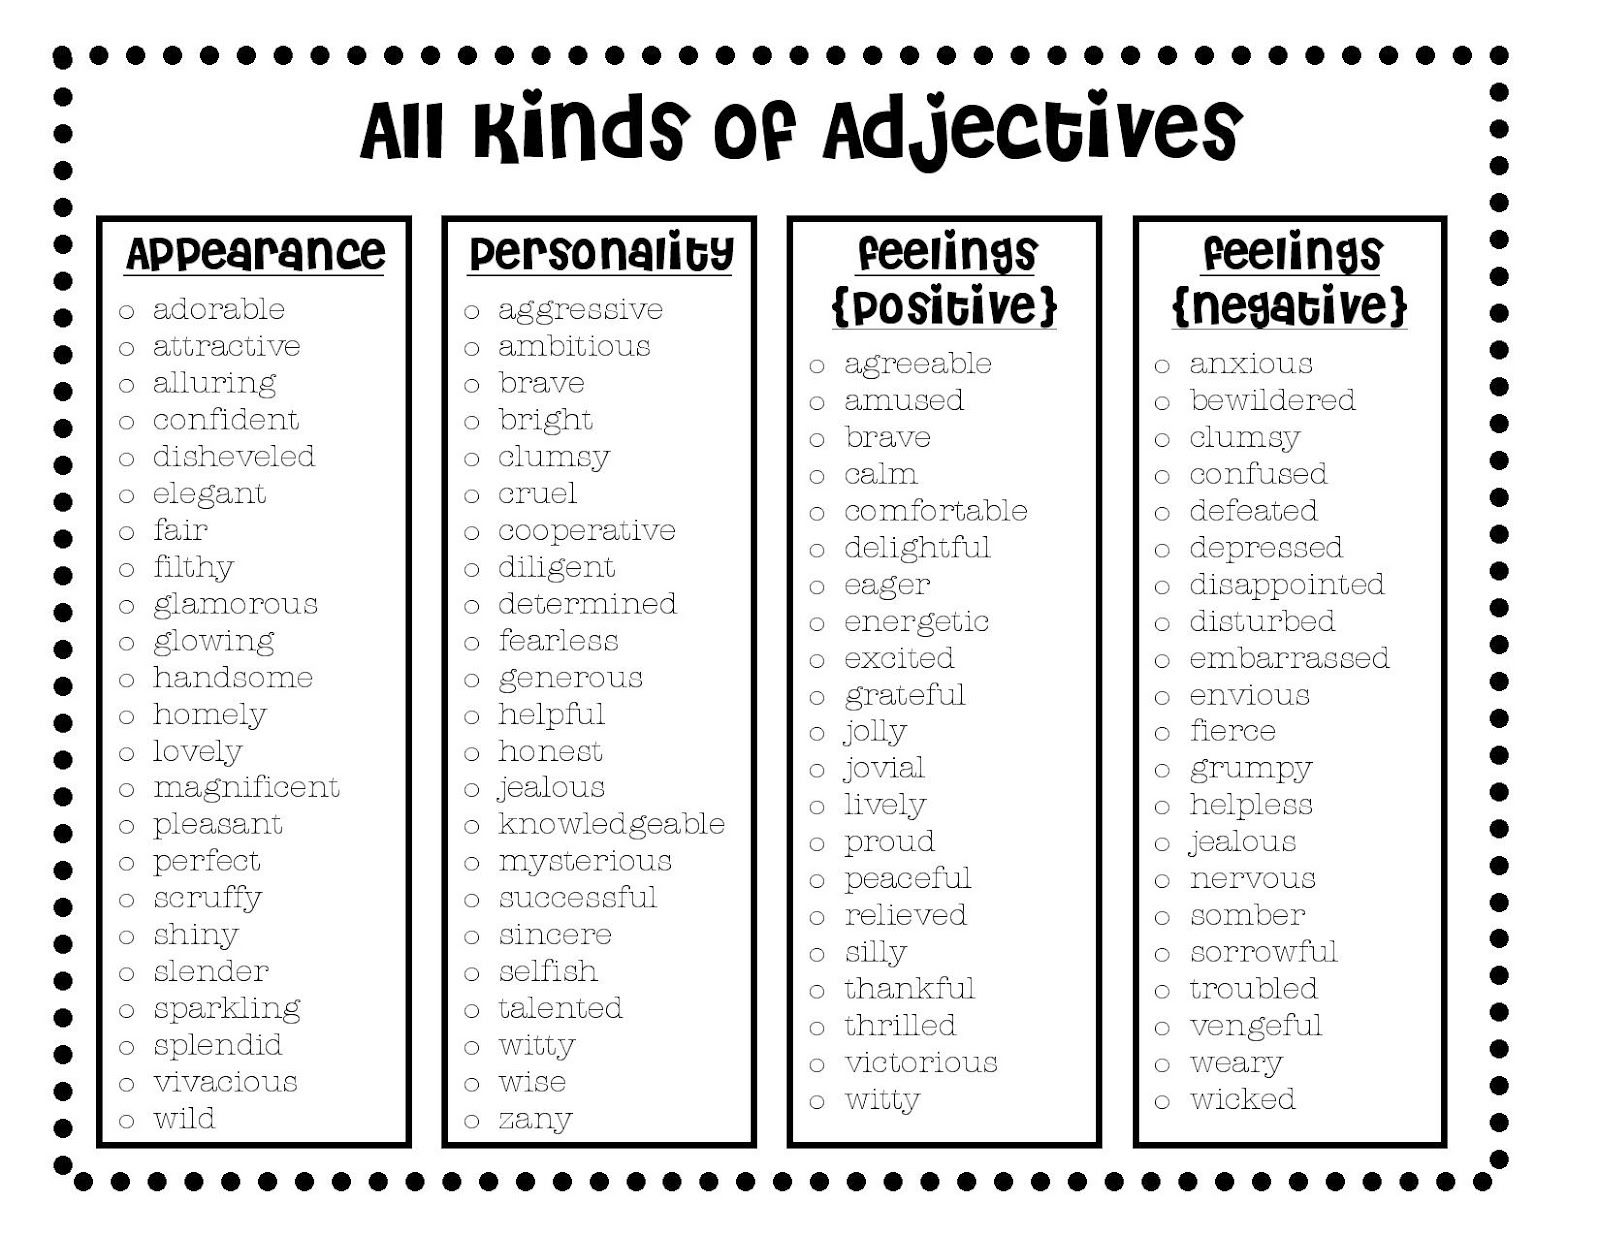 List of adjectives to describe yourself